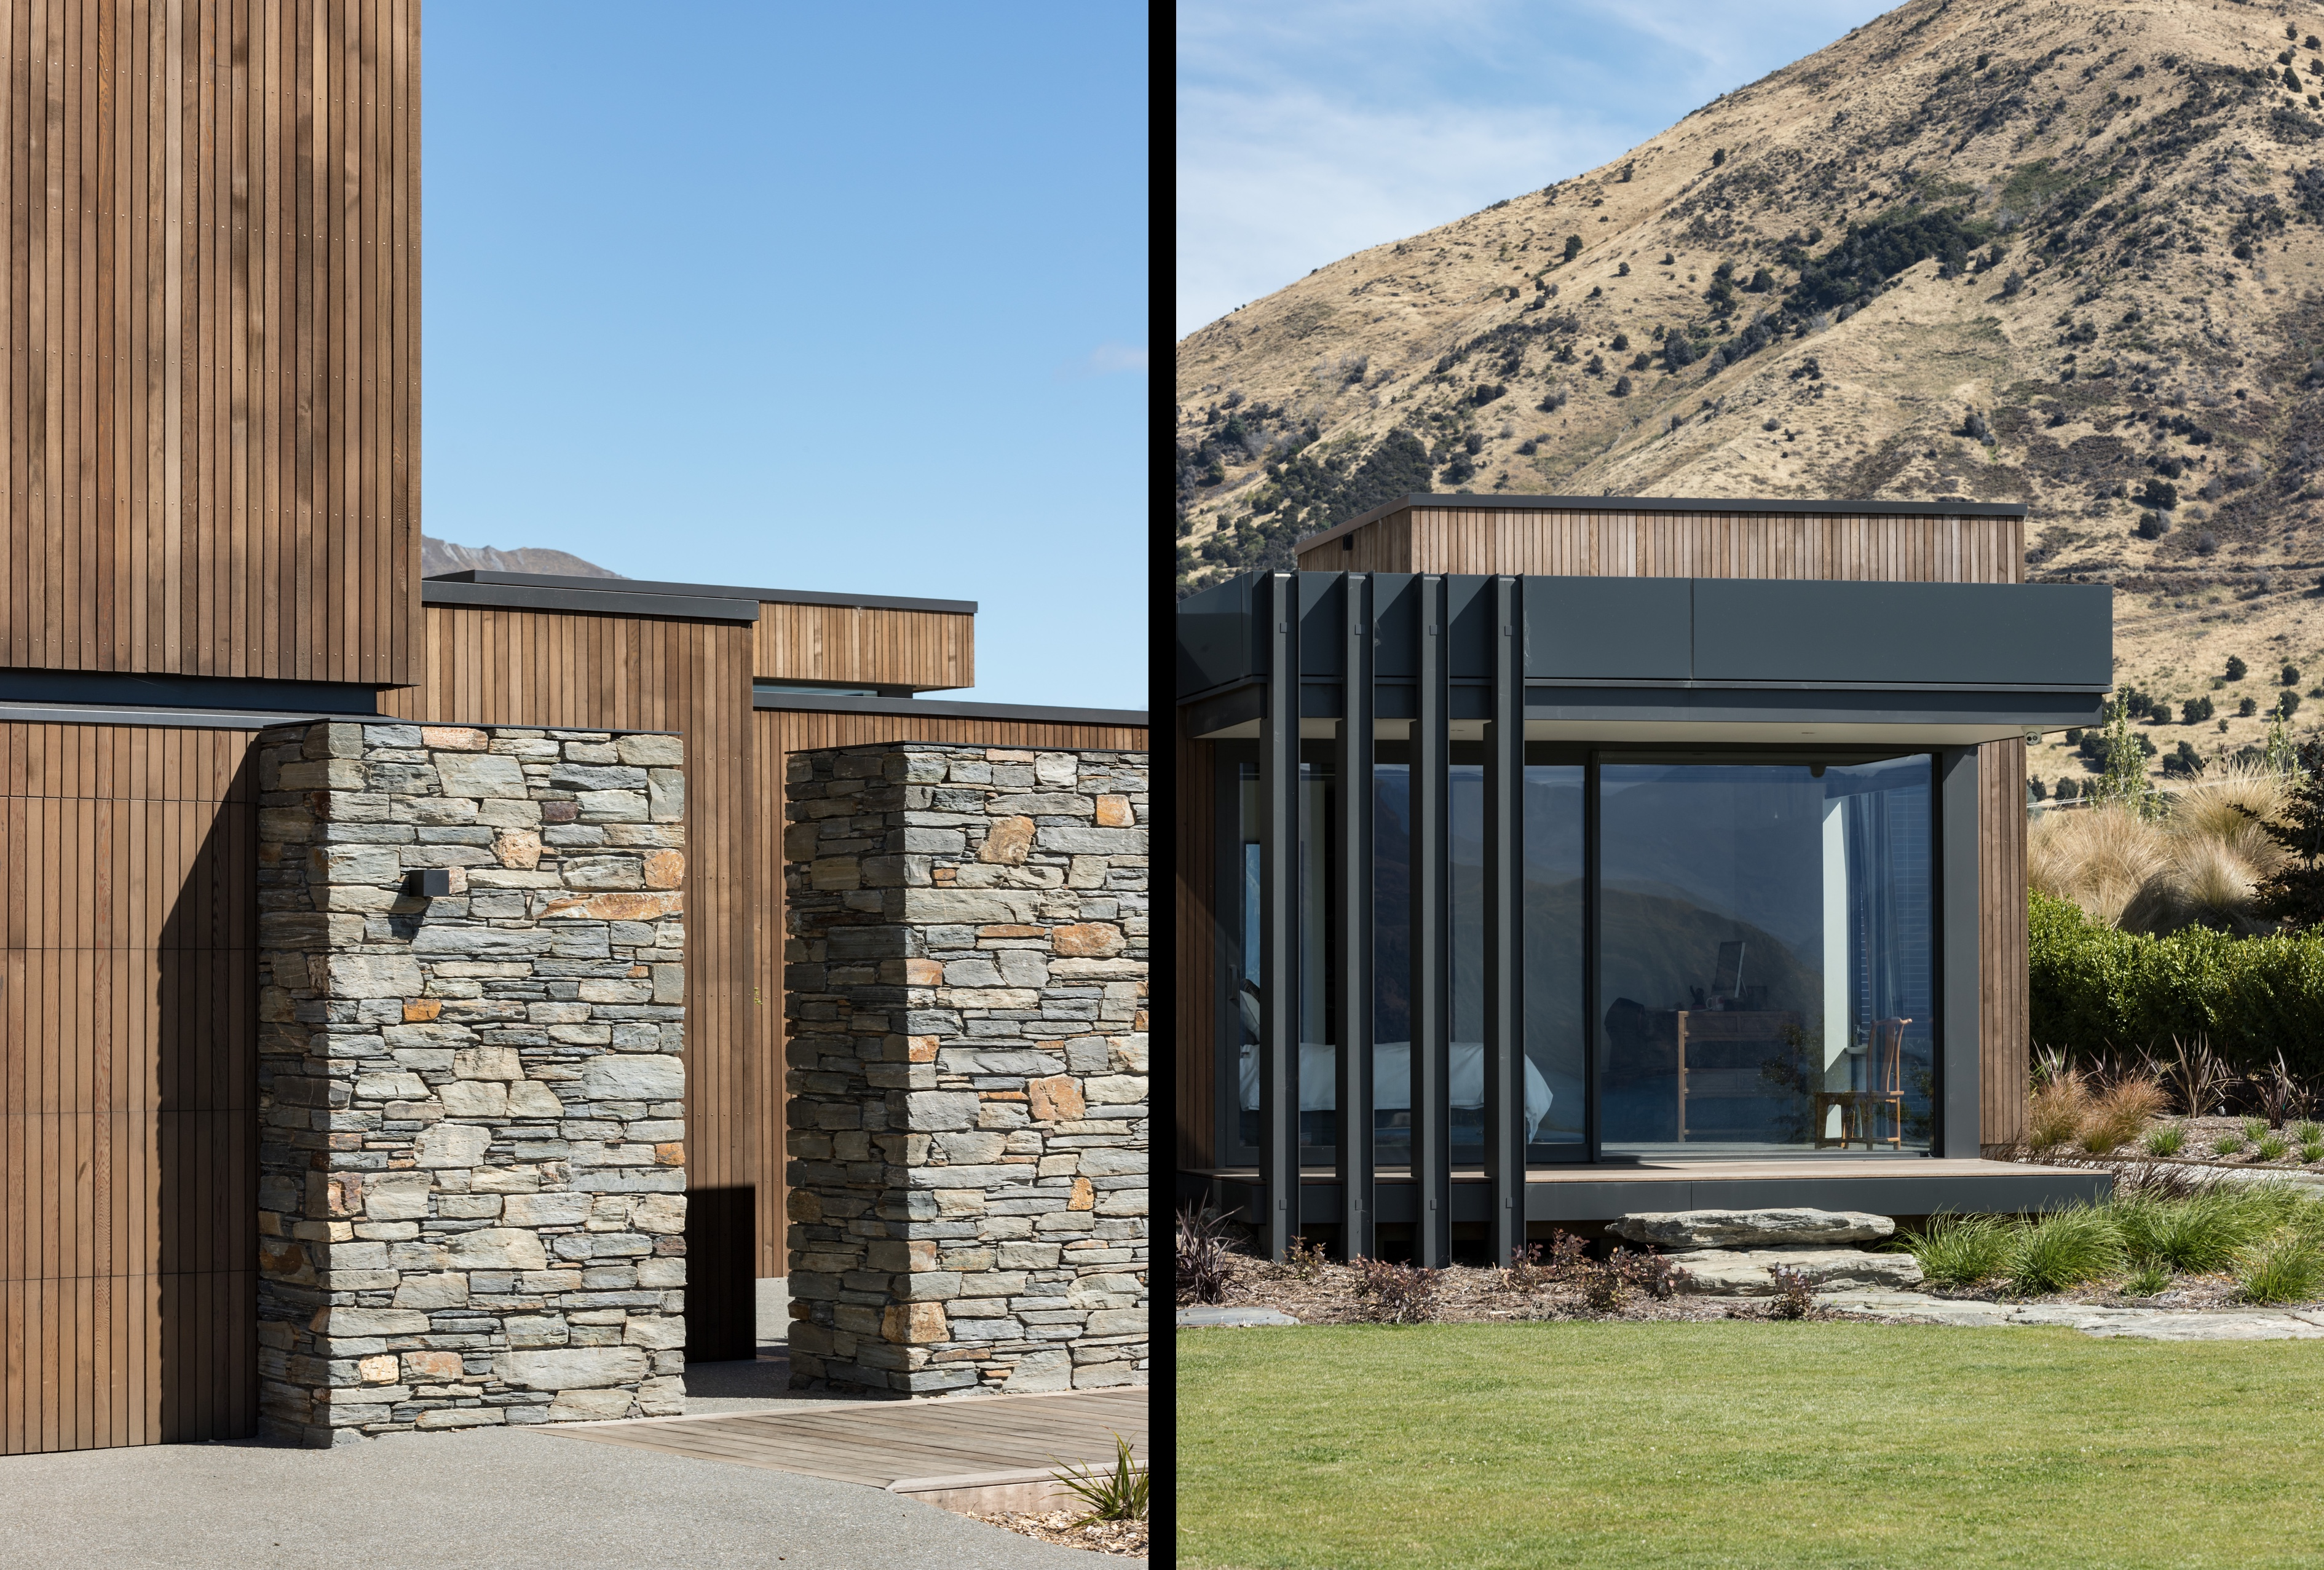 Split image depicting the use of stone and vertical timber cladding on the left, and an exterior on the right showing glazing, steel structural elements, and burnt hills in the background